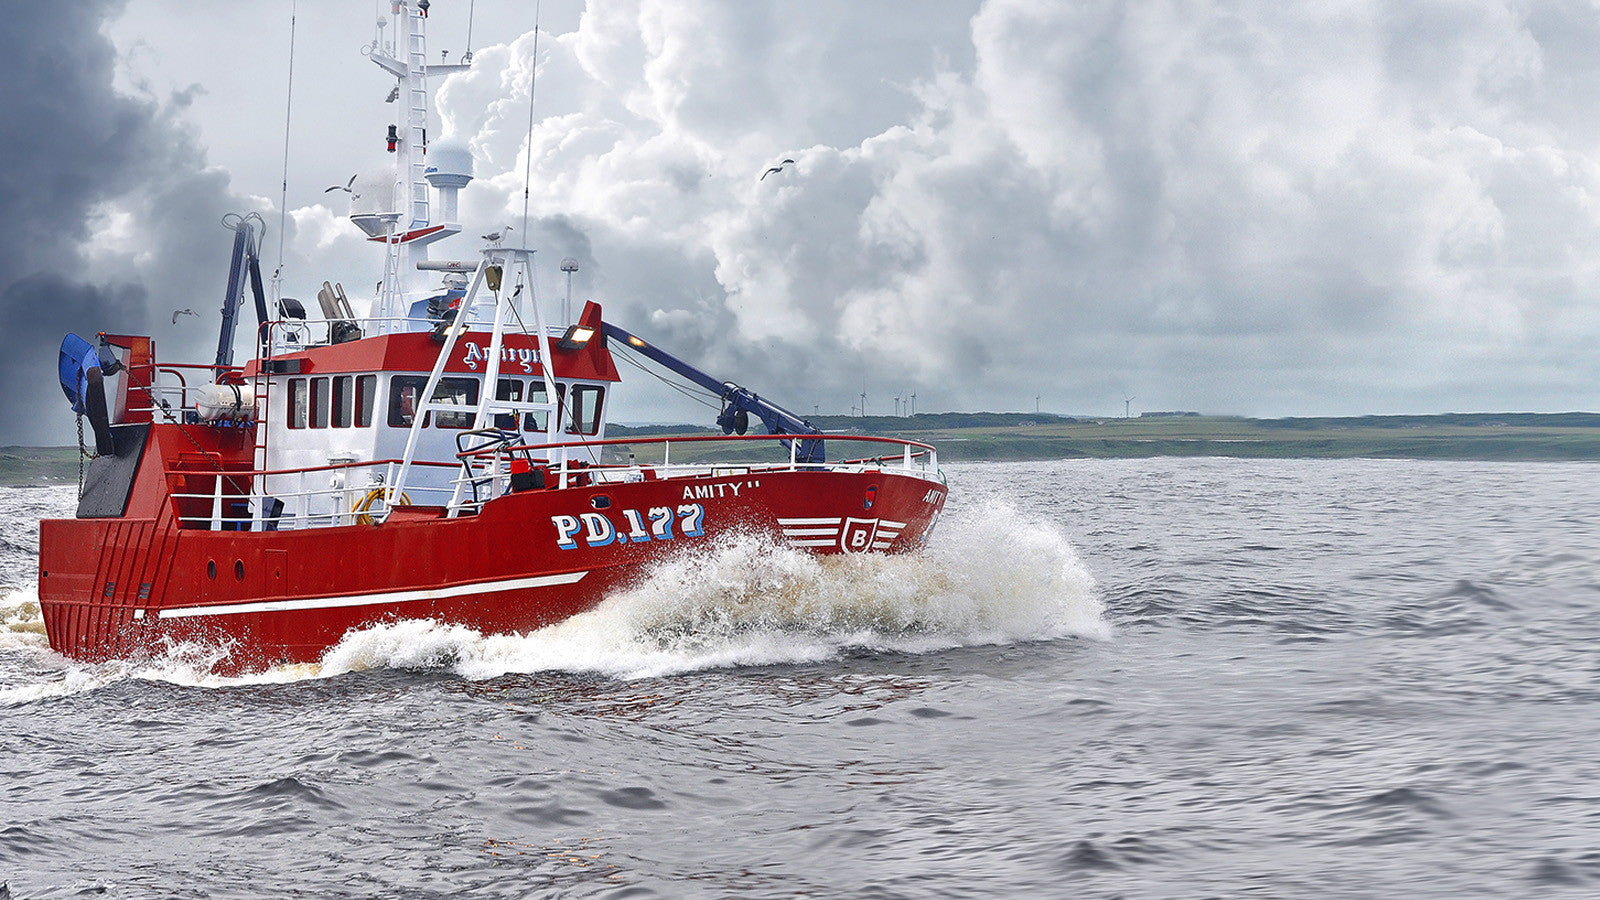 Peterhead-registered trawler Amity II and star of the BBC's BAFTA award-winning Trawlermen TV series